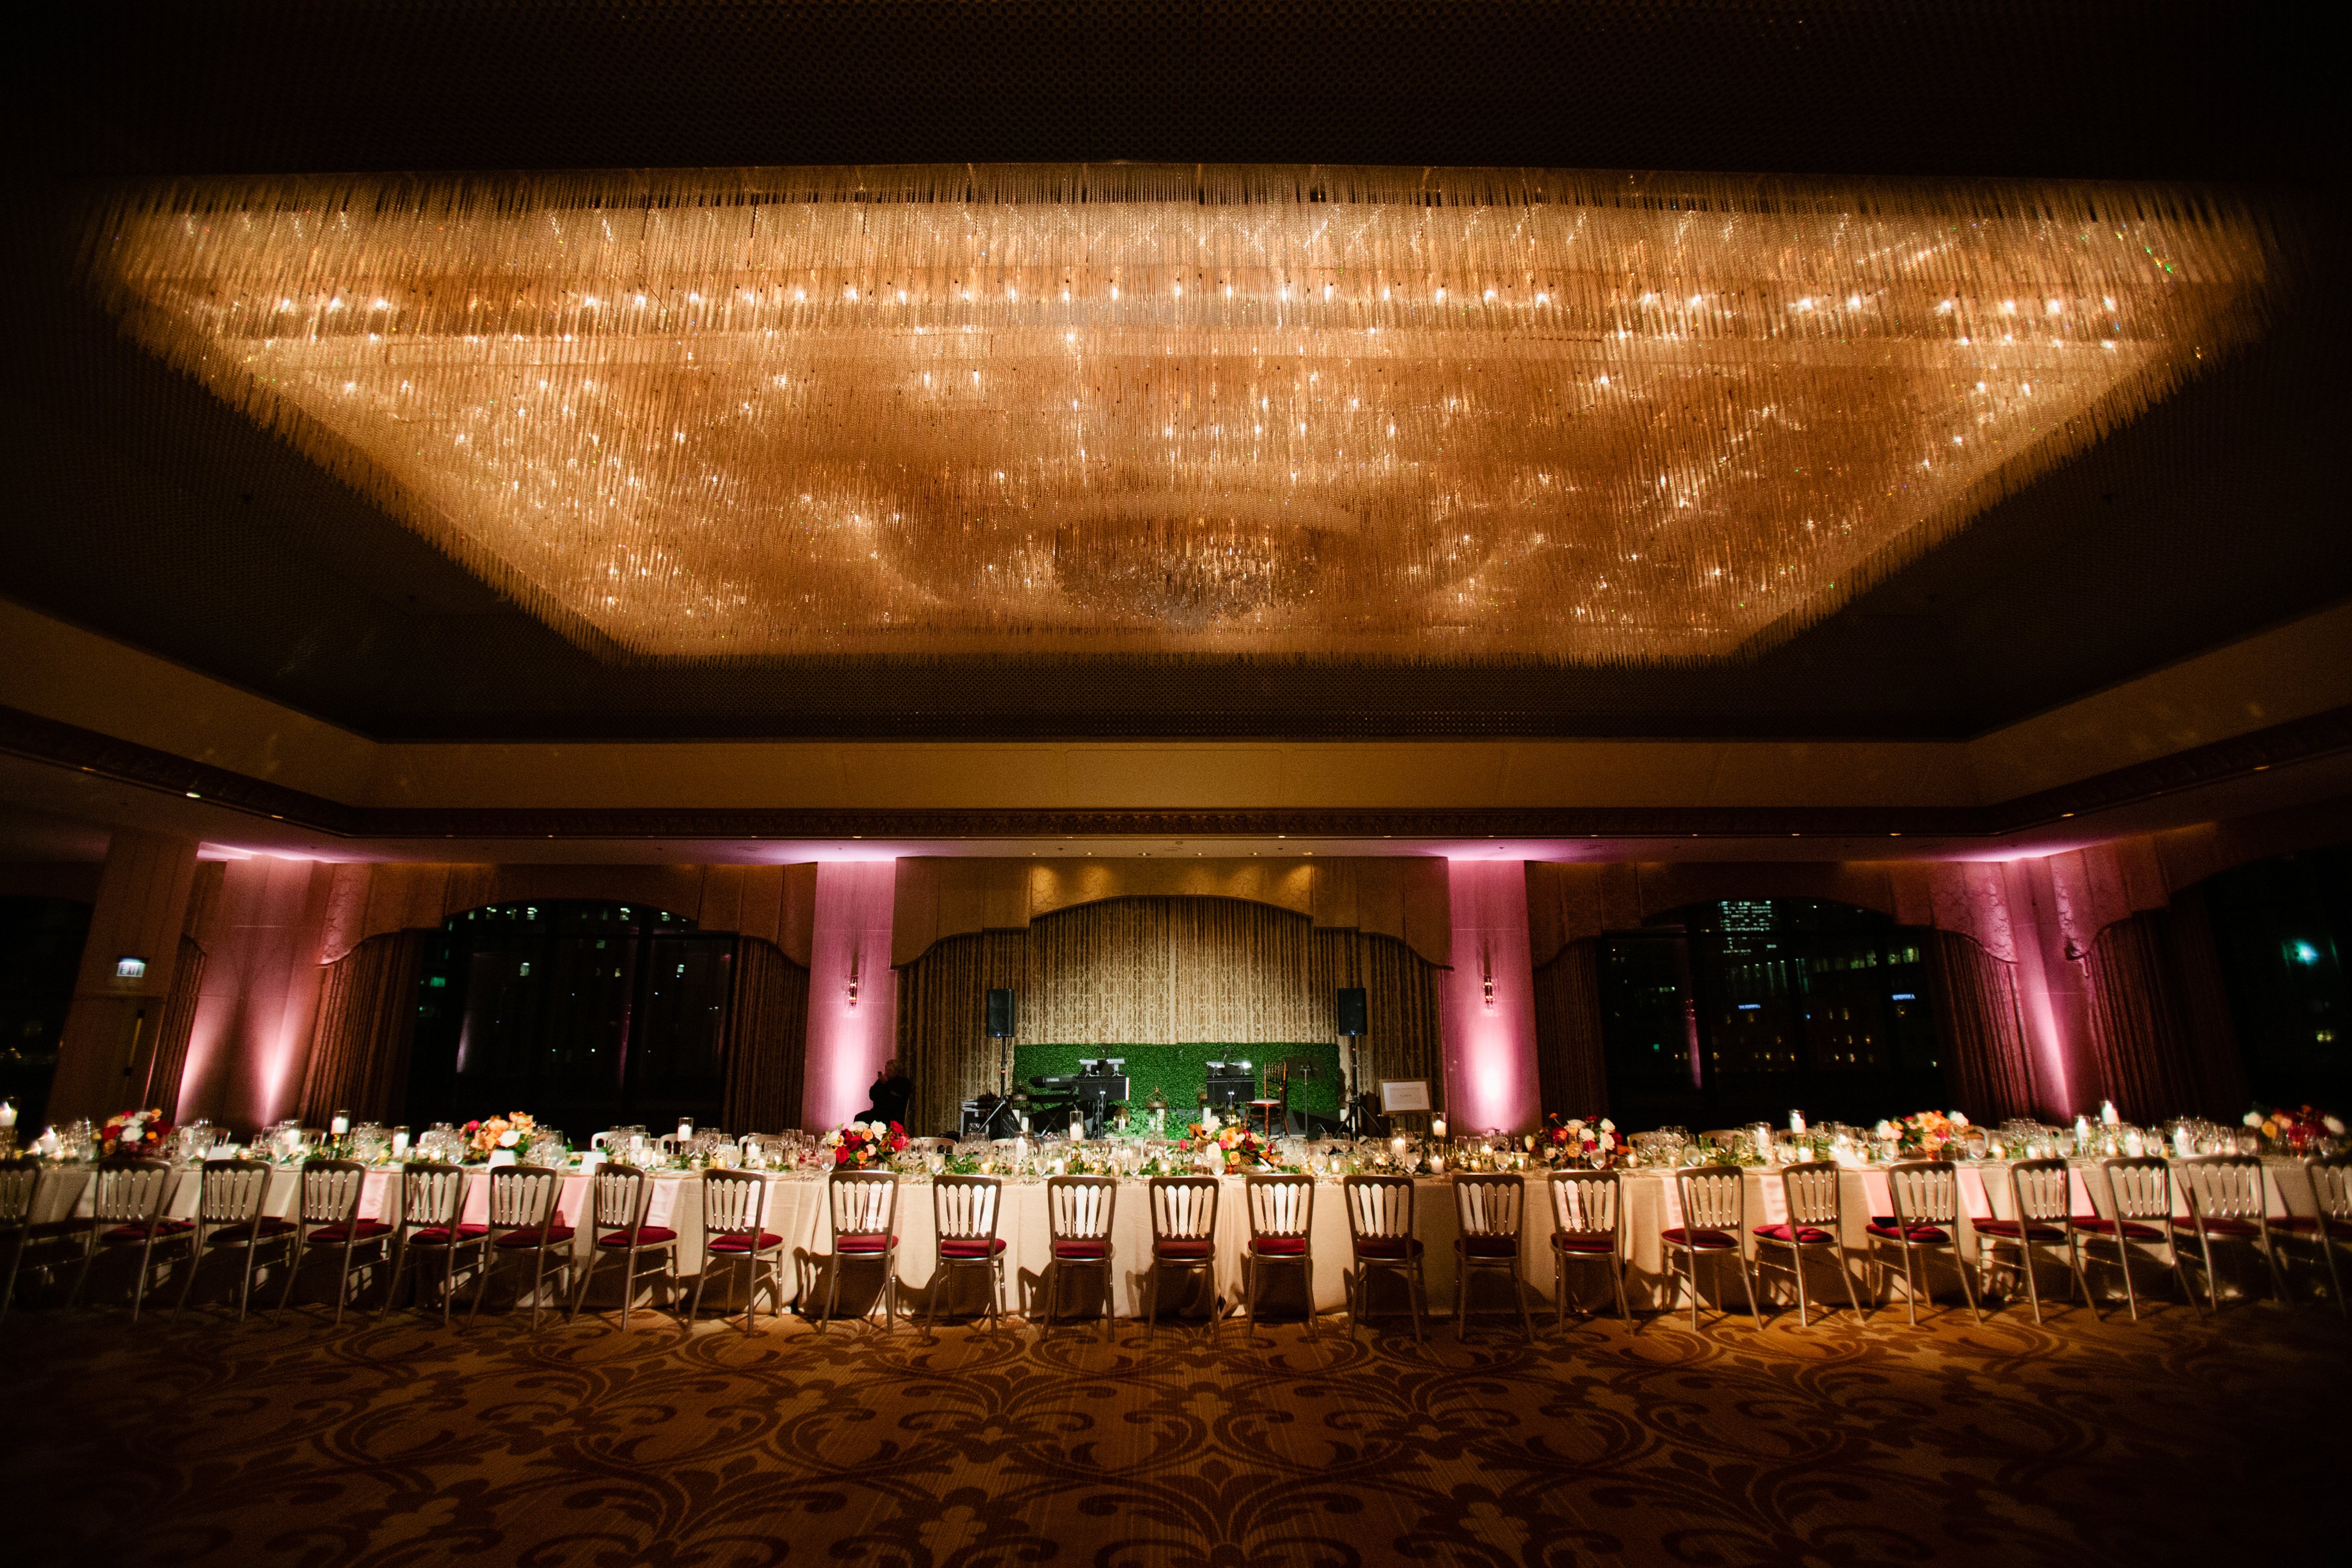 Ombre Dinner Party at The Ritz - Hello Darling